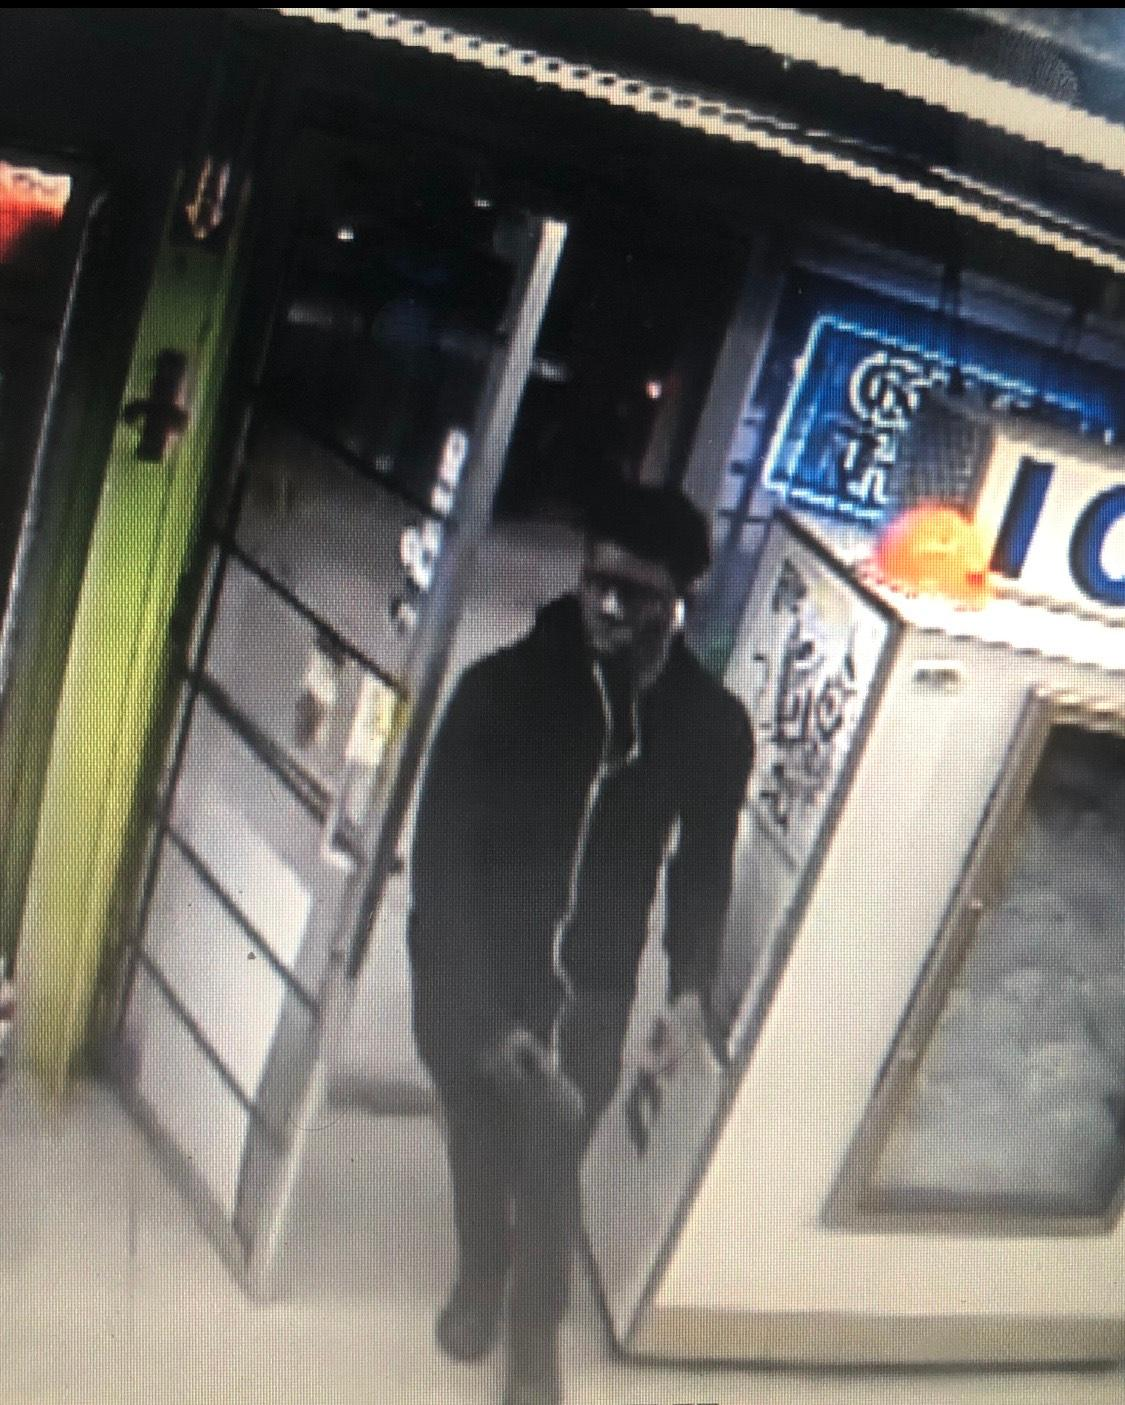 (MPD) MPD now needs the public's help identifying and locating the male suspect seen in this photo. This will be the suspect involved in this homicide. If anyone can identify or know his whereabouts, please call (251)208-7211. You can remain anonymous.